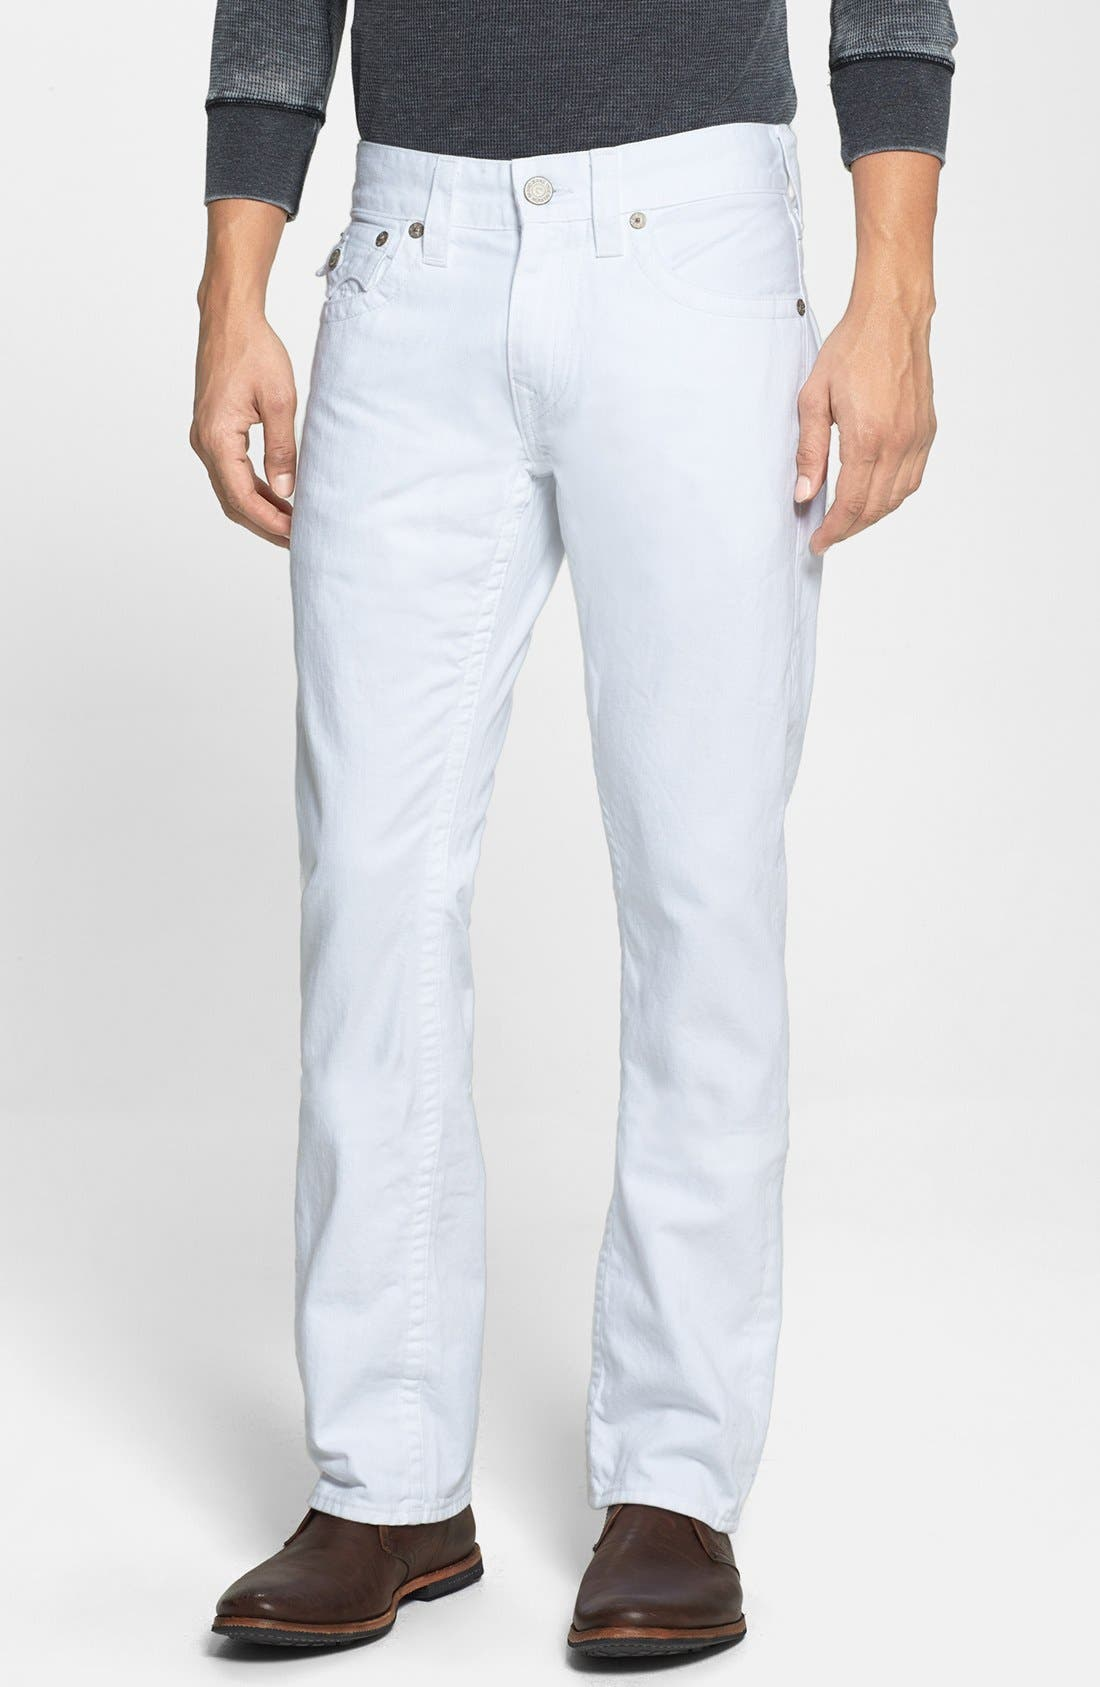 Alternate Image 2  - True Religion Brand Jeans 'Ricky' Relaxed Fit Jeans (Optic White)